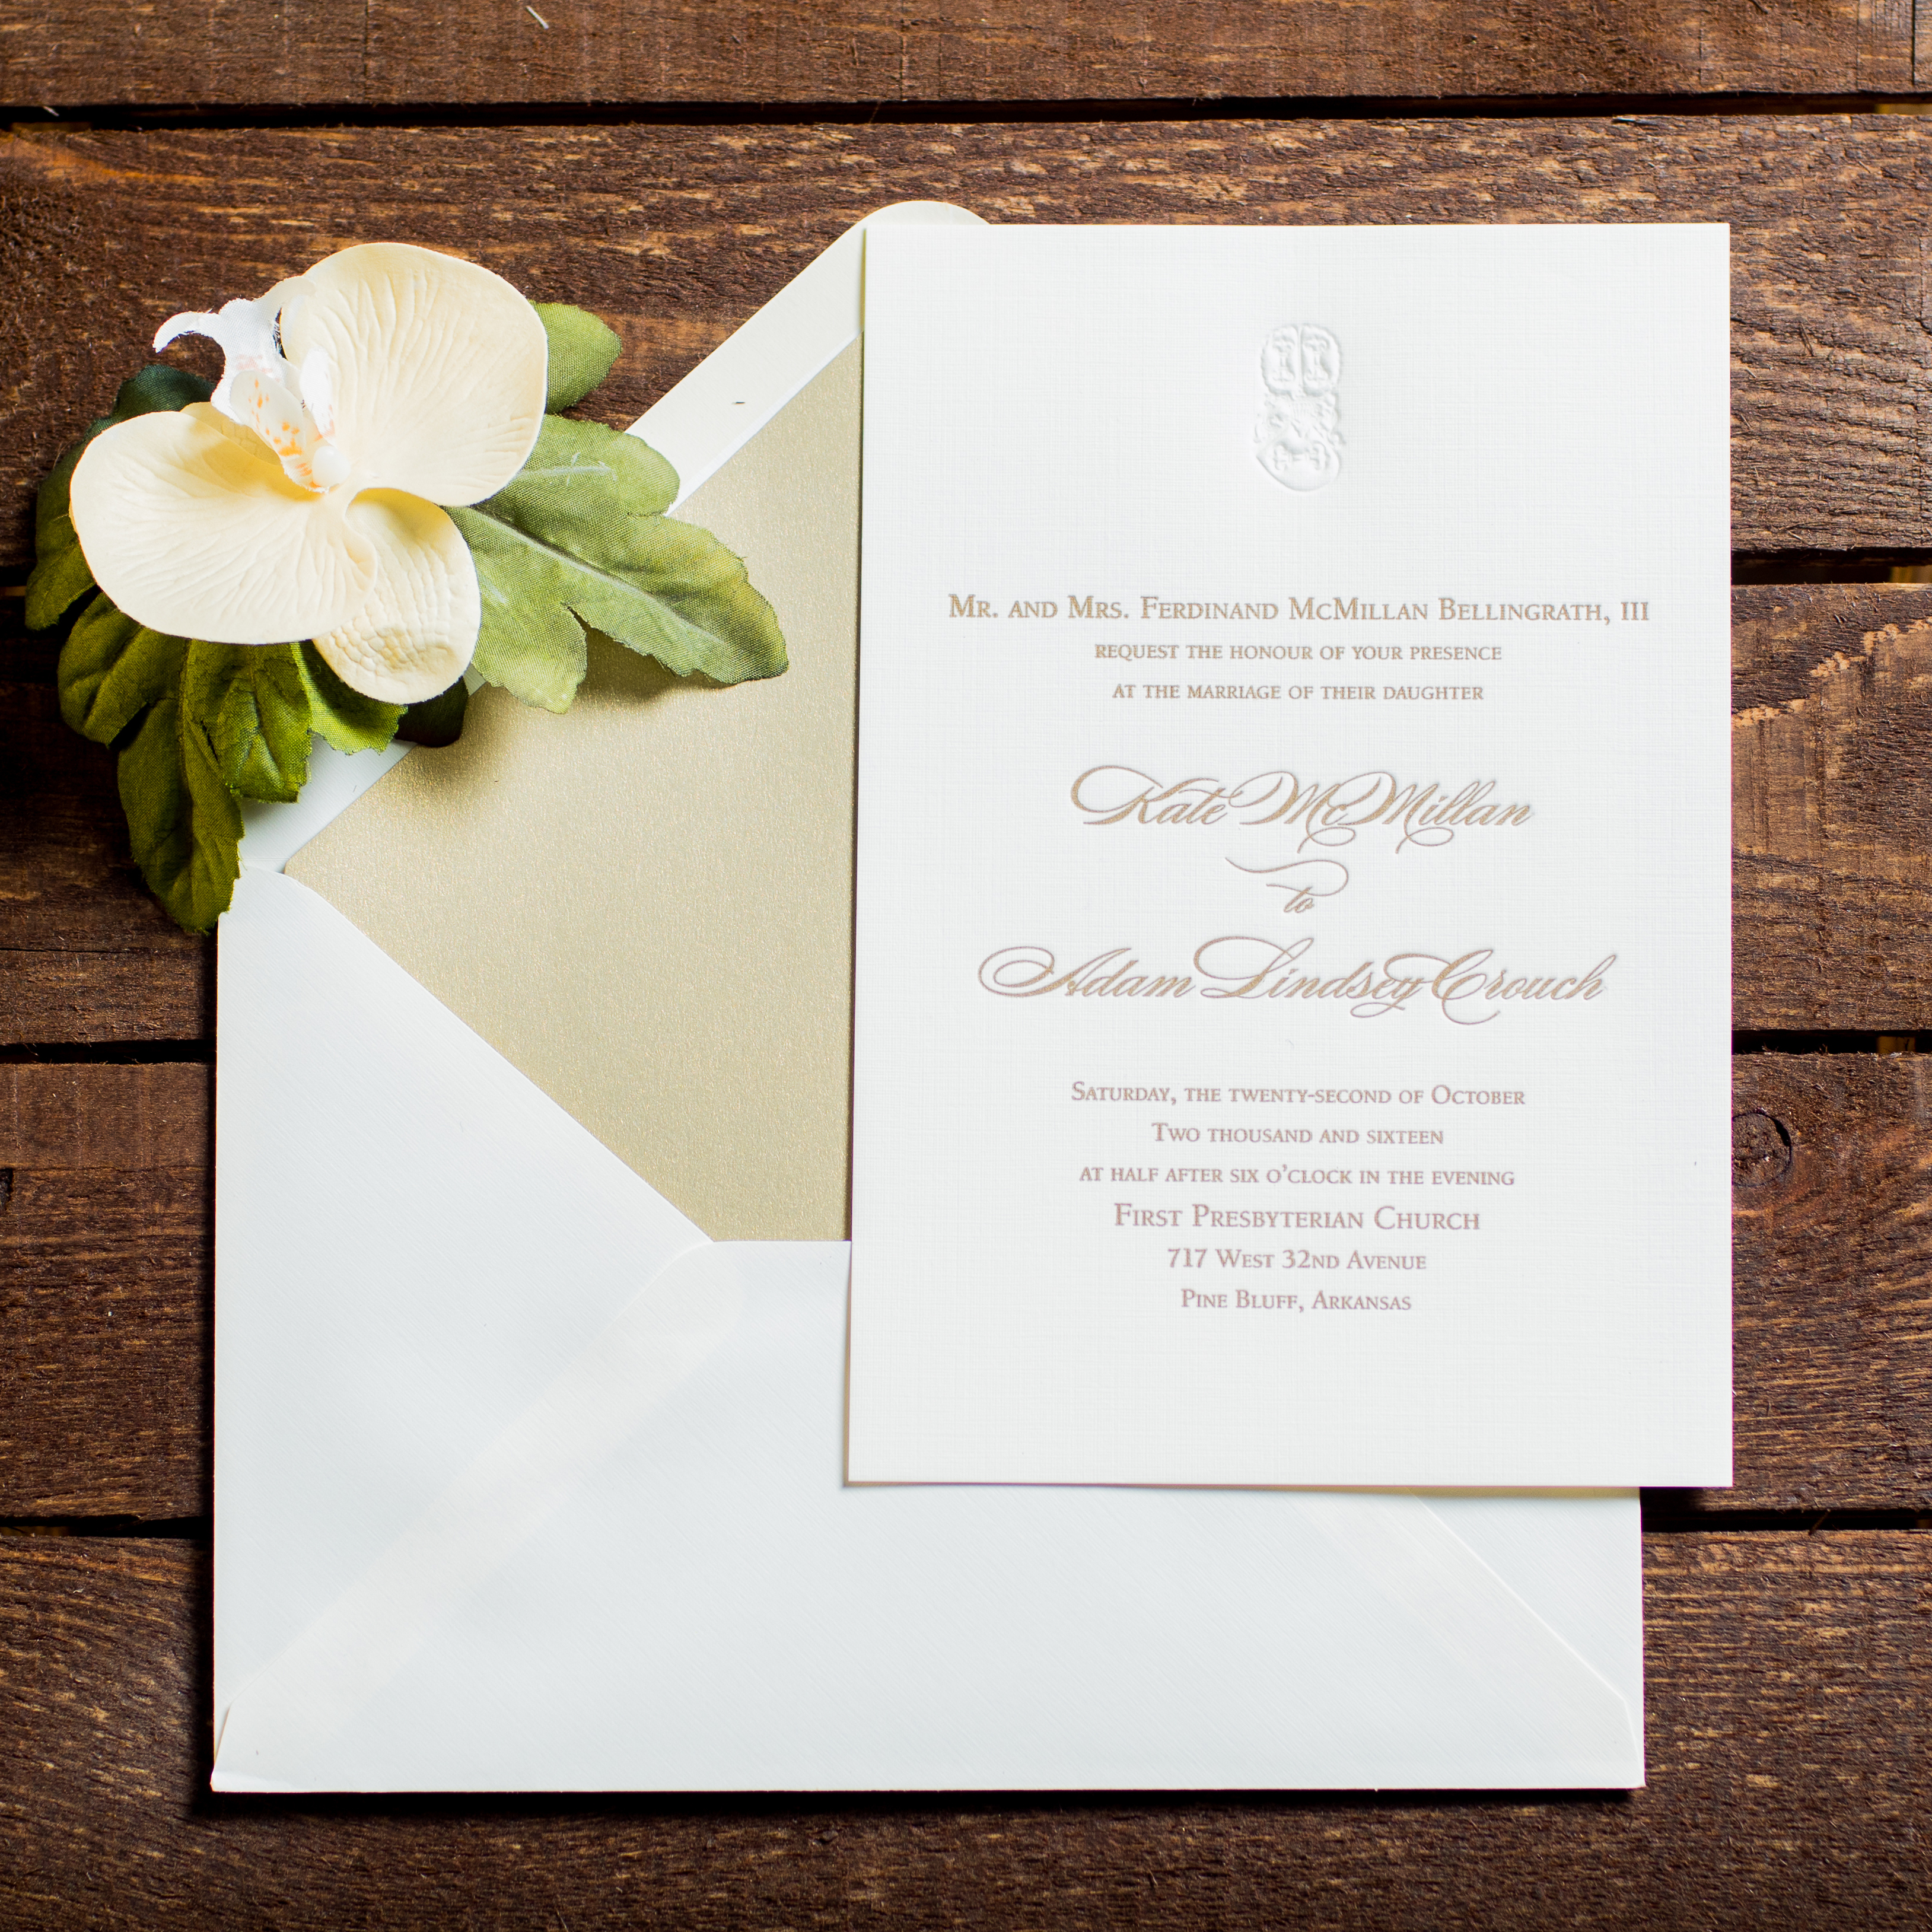 invitation paper stock See a rich collection of stock images, vectors, or photos for invitation card you can buy on shutterstock explore quality images, photos, art & more.